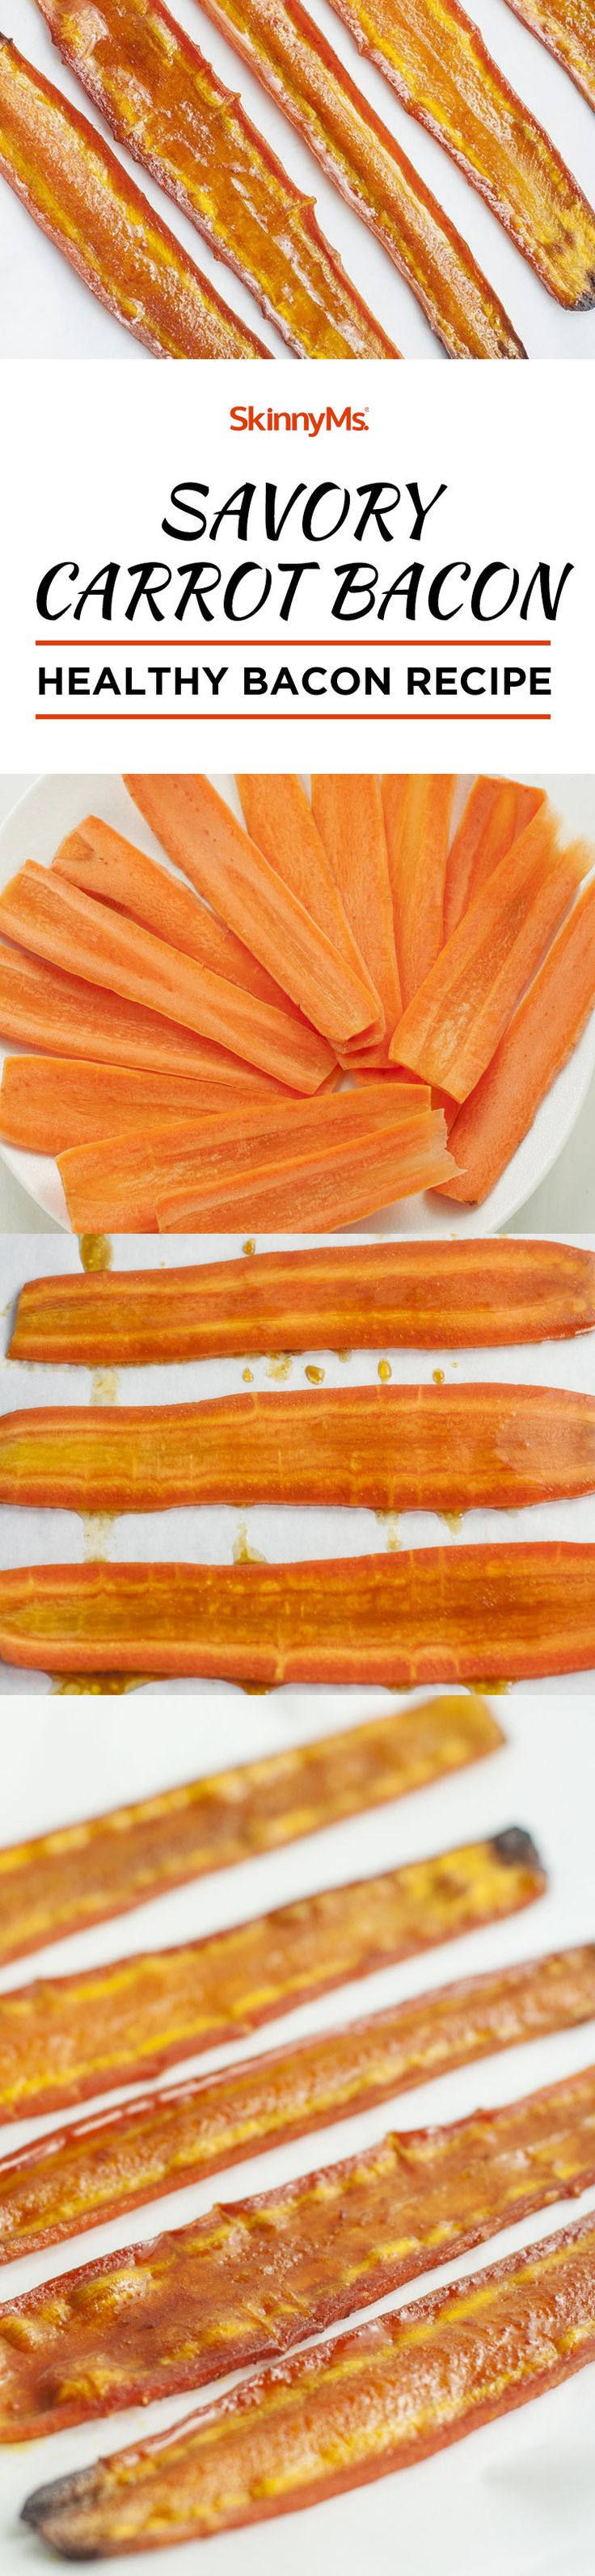 This Savory Carrot Bacon tastes like real bacon!